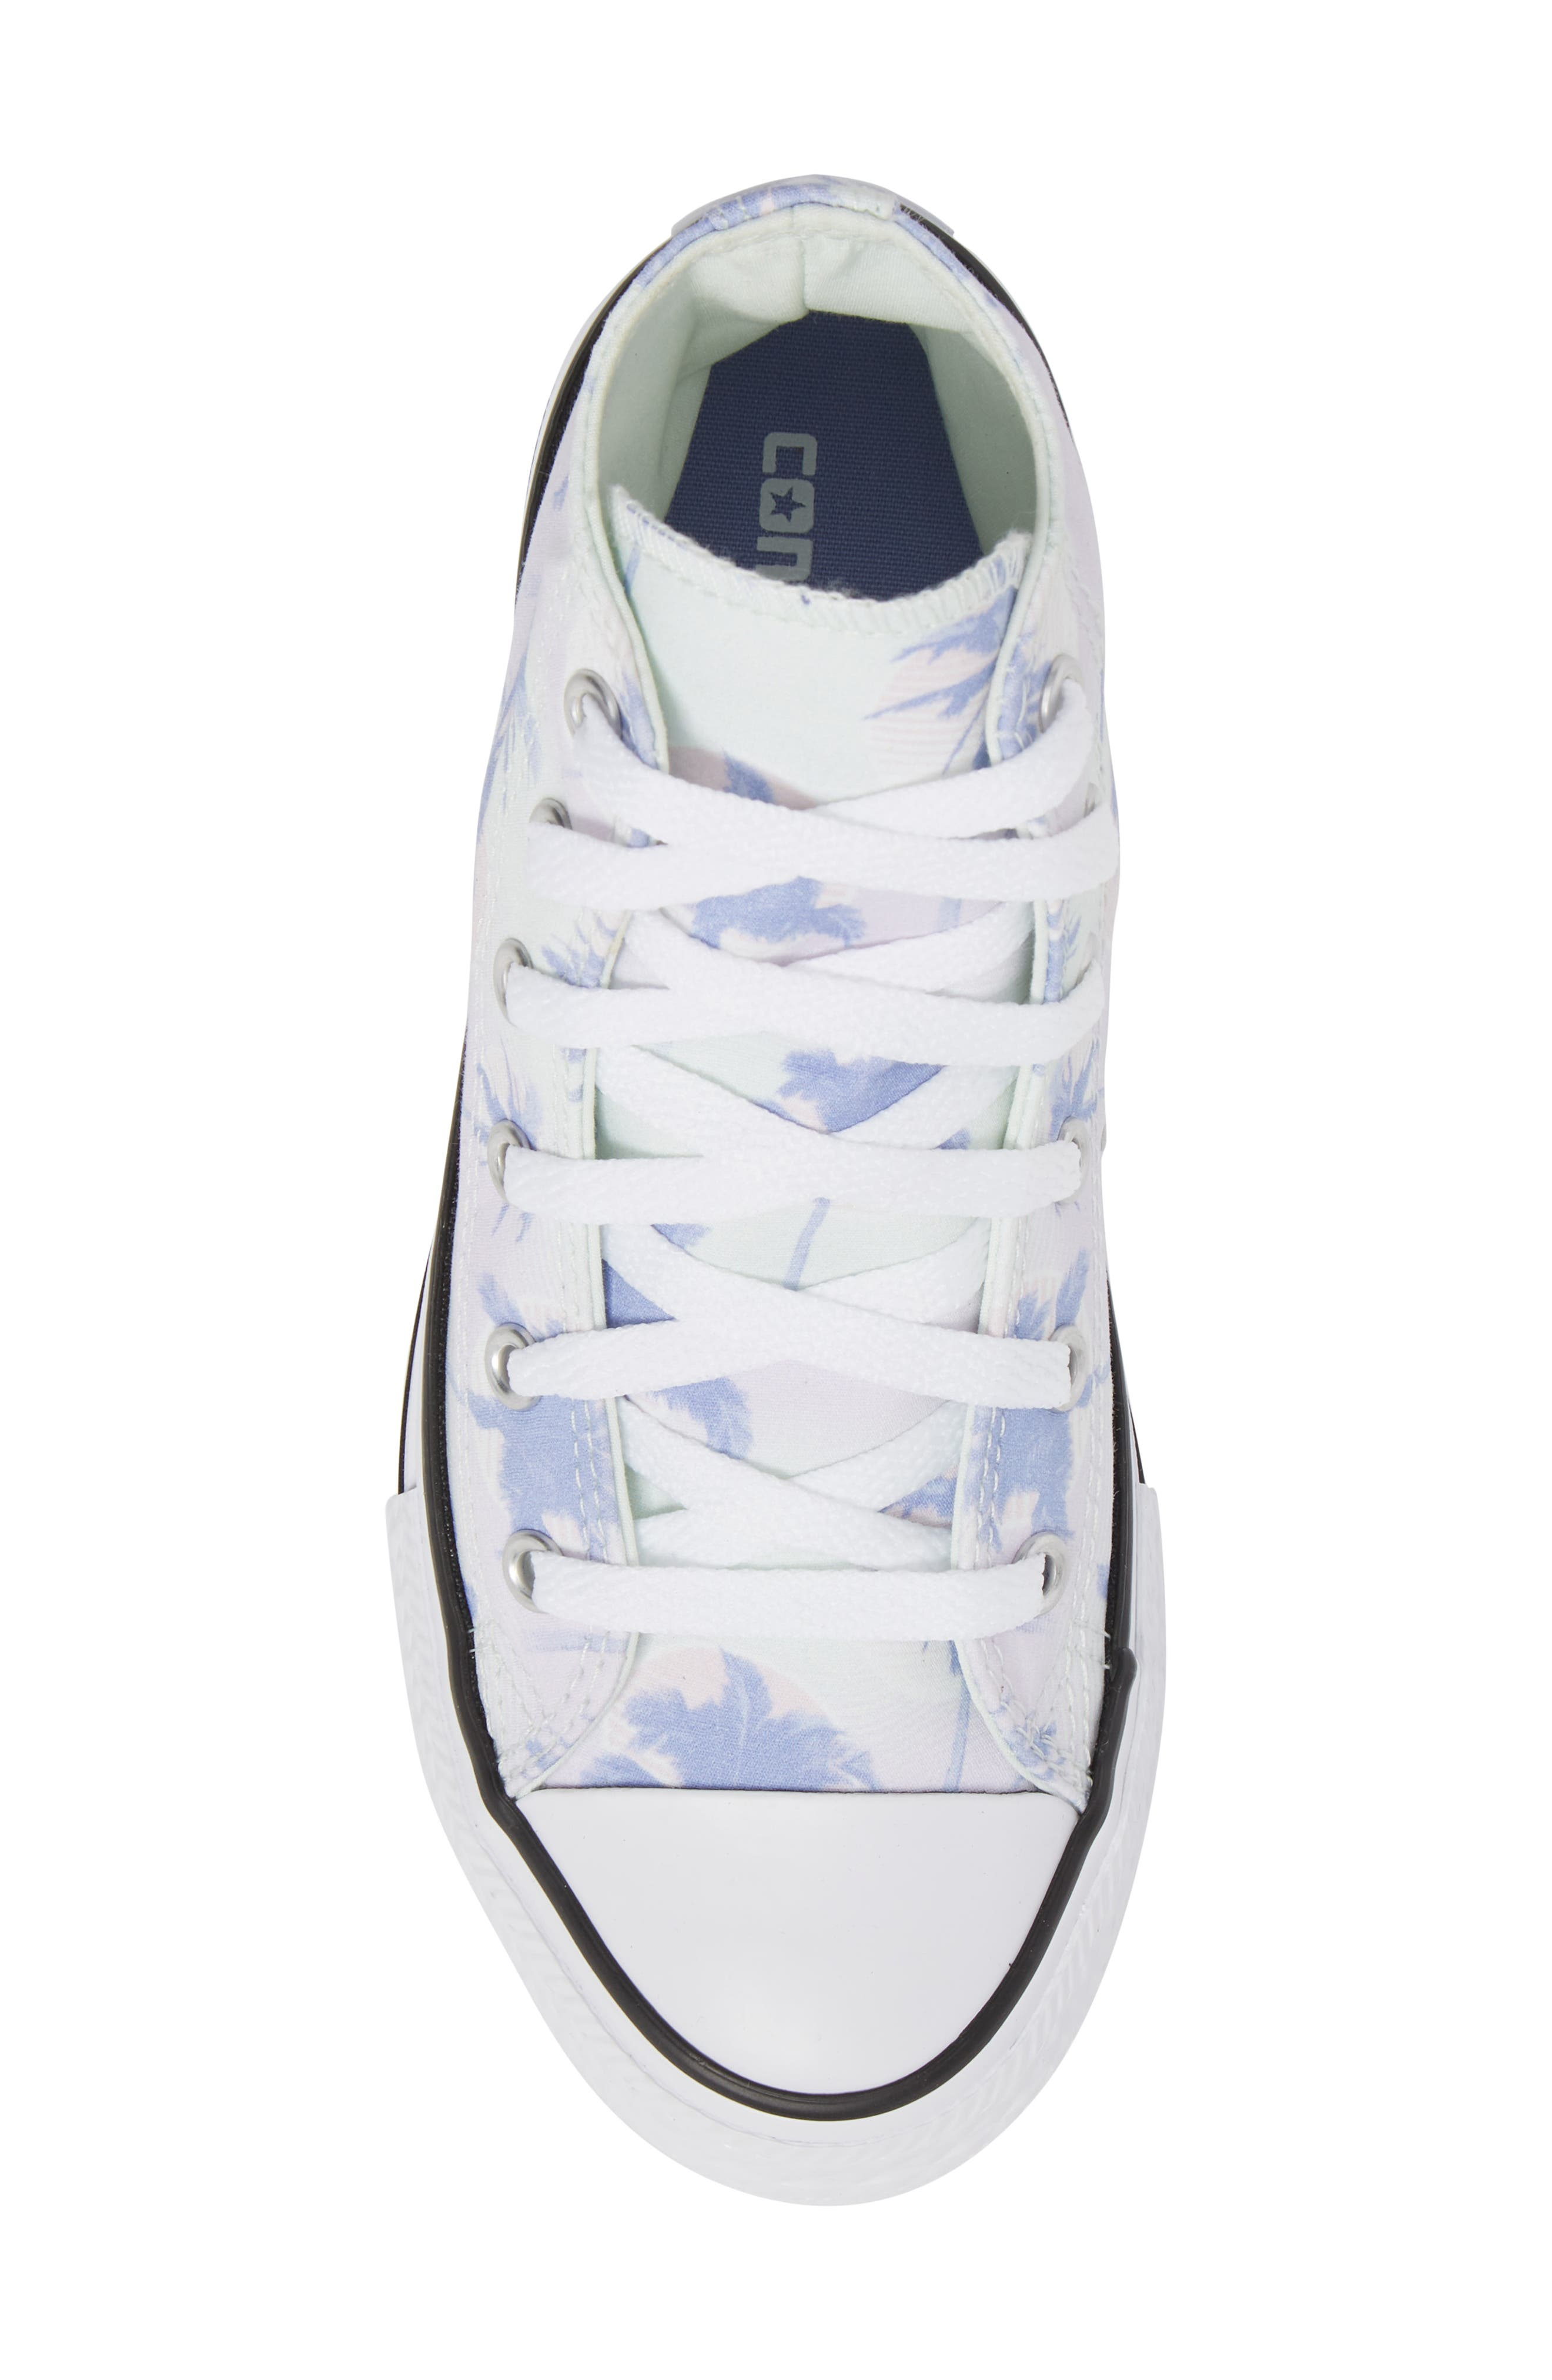 Chuck Taylor<sup>®</sup> All Star<sup>®</sup> Palm Tree High Top Sneaker,                             Alternate thumbnail 5, color,                             507